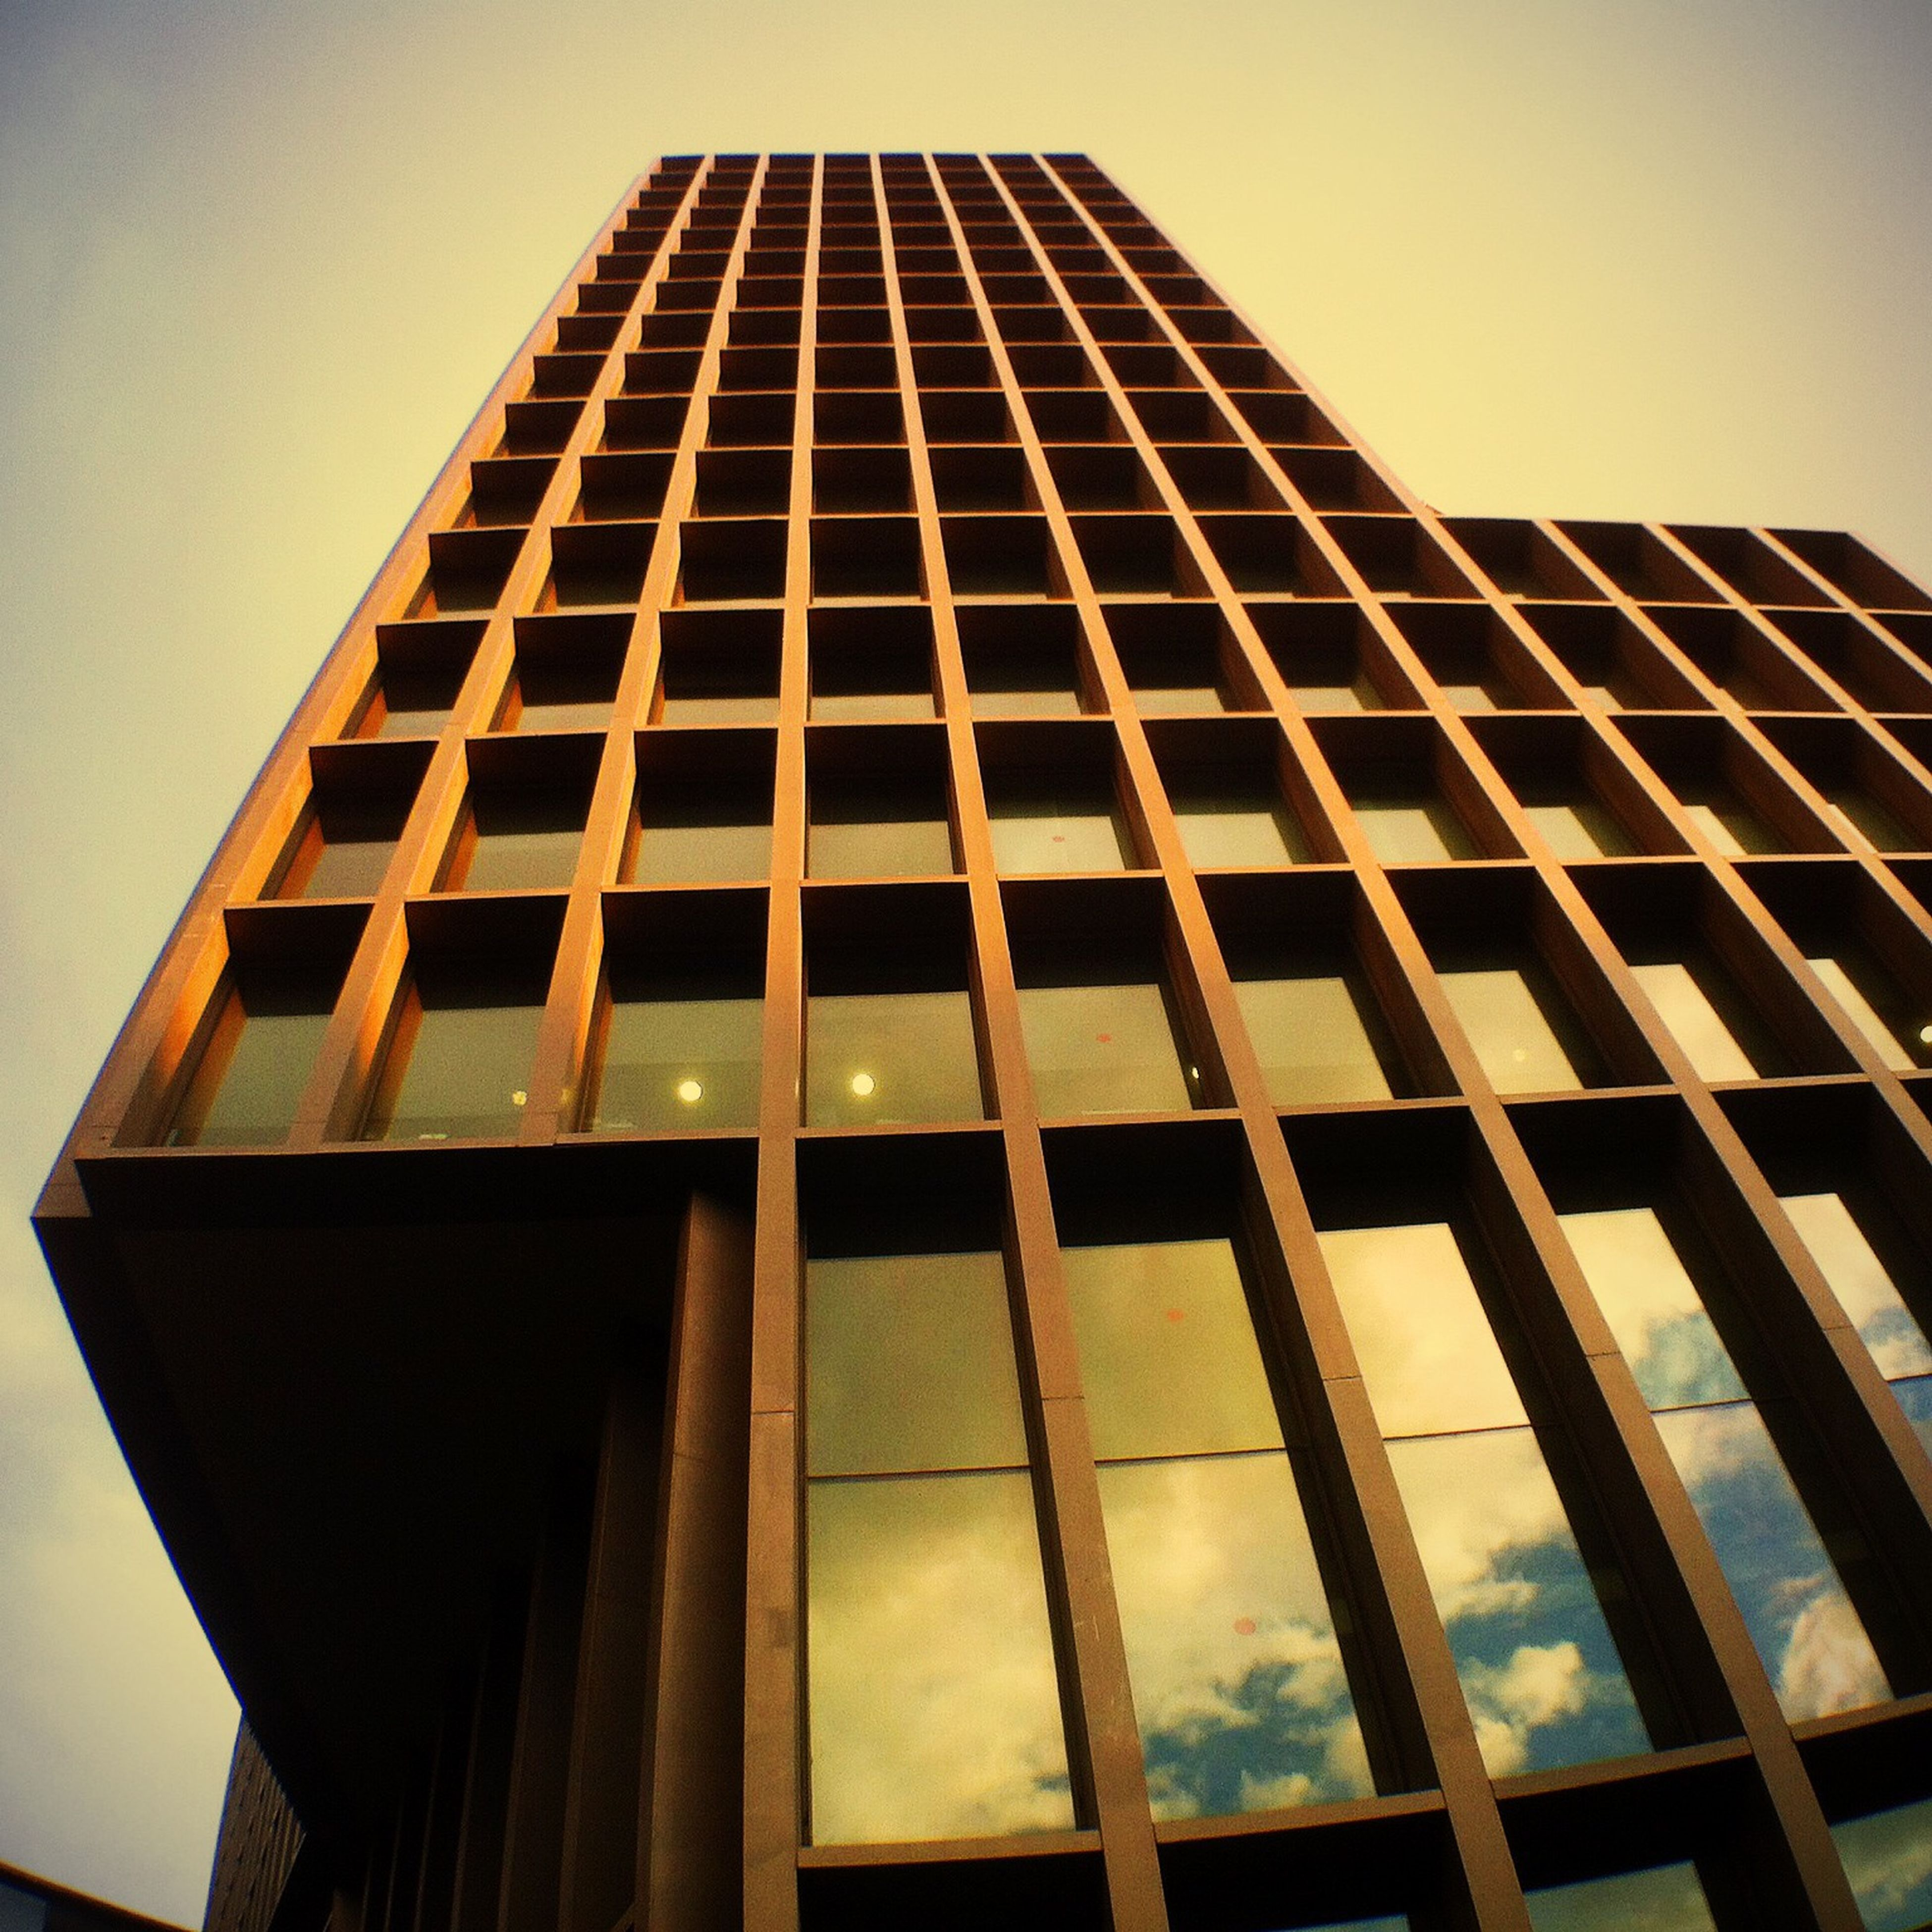 architecture, built structure, building exterior, low angle view, modern, glass - material, window, building, office building, reflection, sky, city, tall - high, pattern, geometric shape, clear sky, tower, skyscraper, no people, day